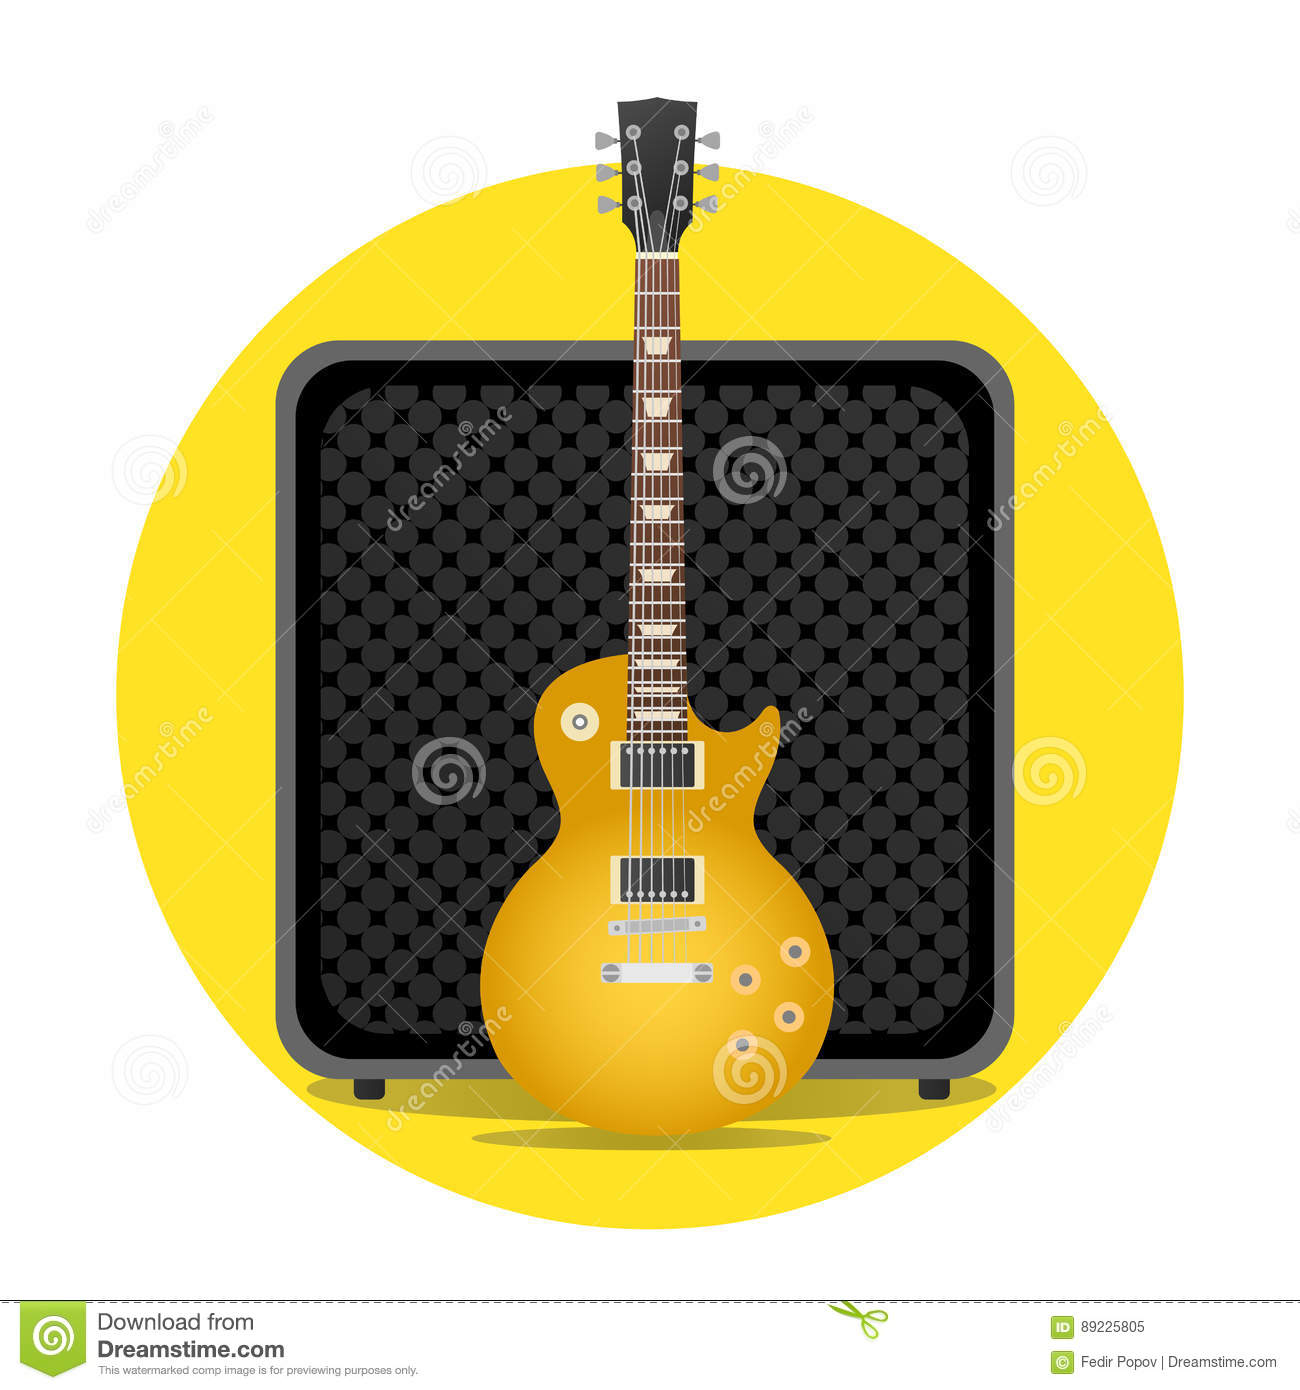 electric guitar with amp stock vector image of hole 89225805. Black Bedroom Furniture Sets. Home Design Ideas